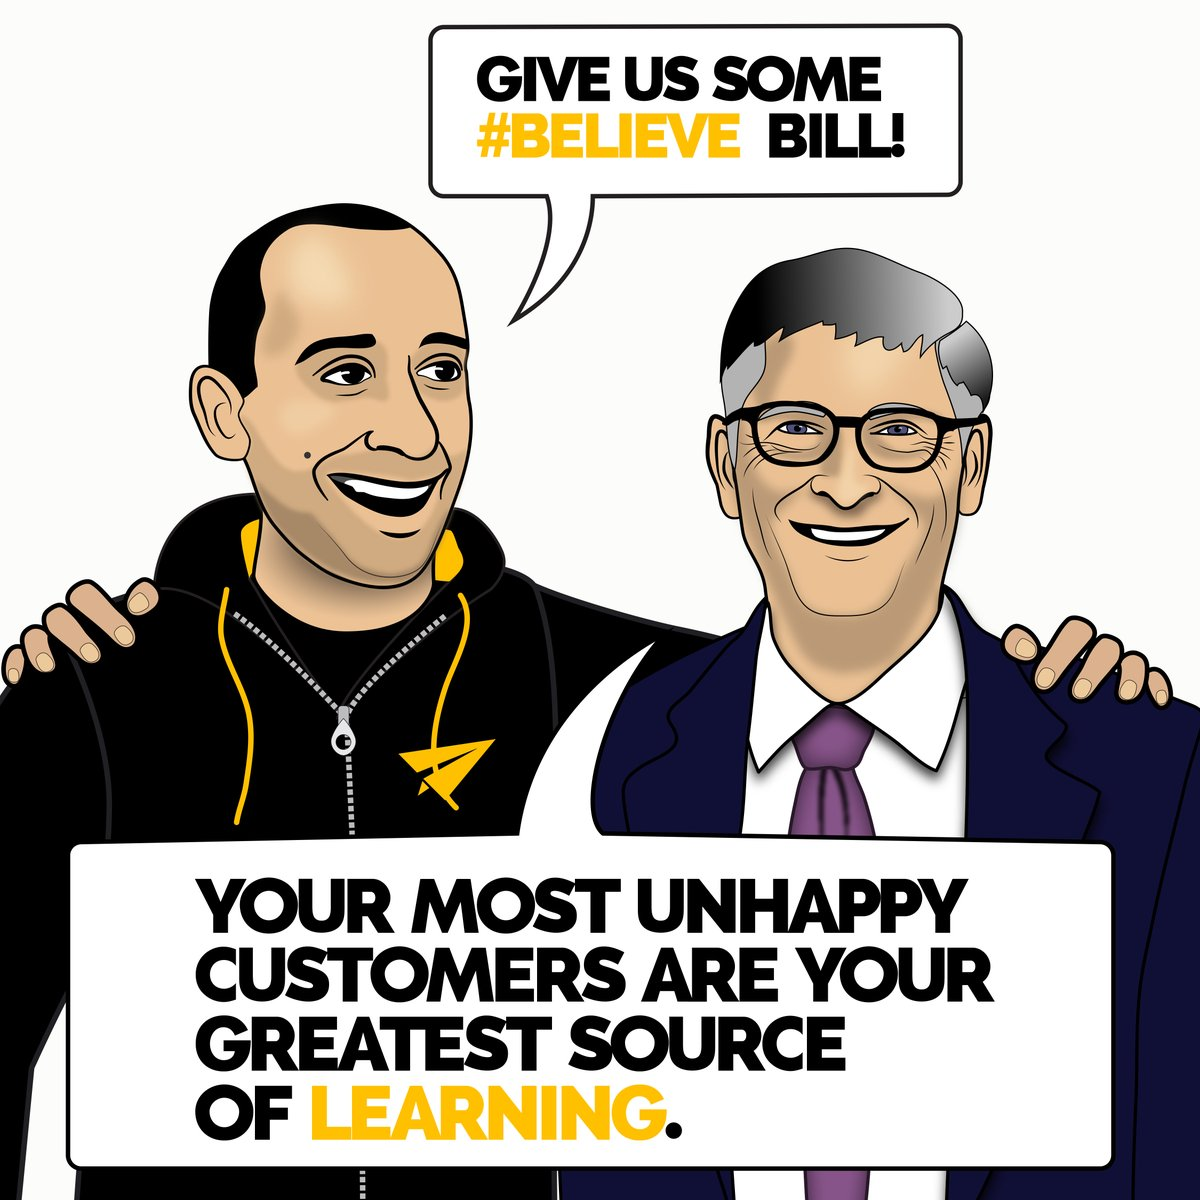 Your most unhappy customers are your greatest source of learning. @BillGates | Do you AGREE or  DISAGREE? Evan Carmichael #Believe  #improvement #mistake #learning